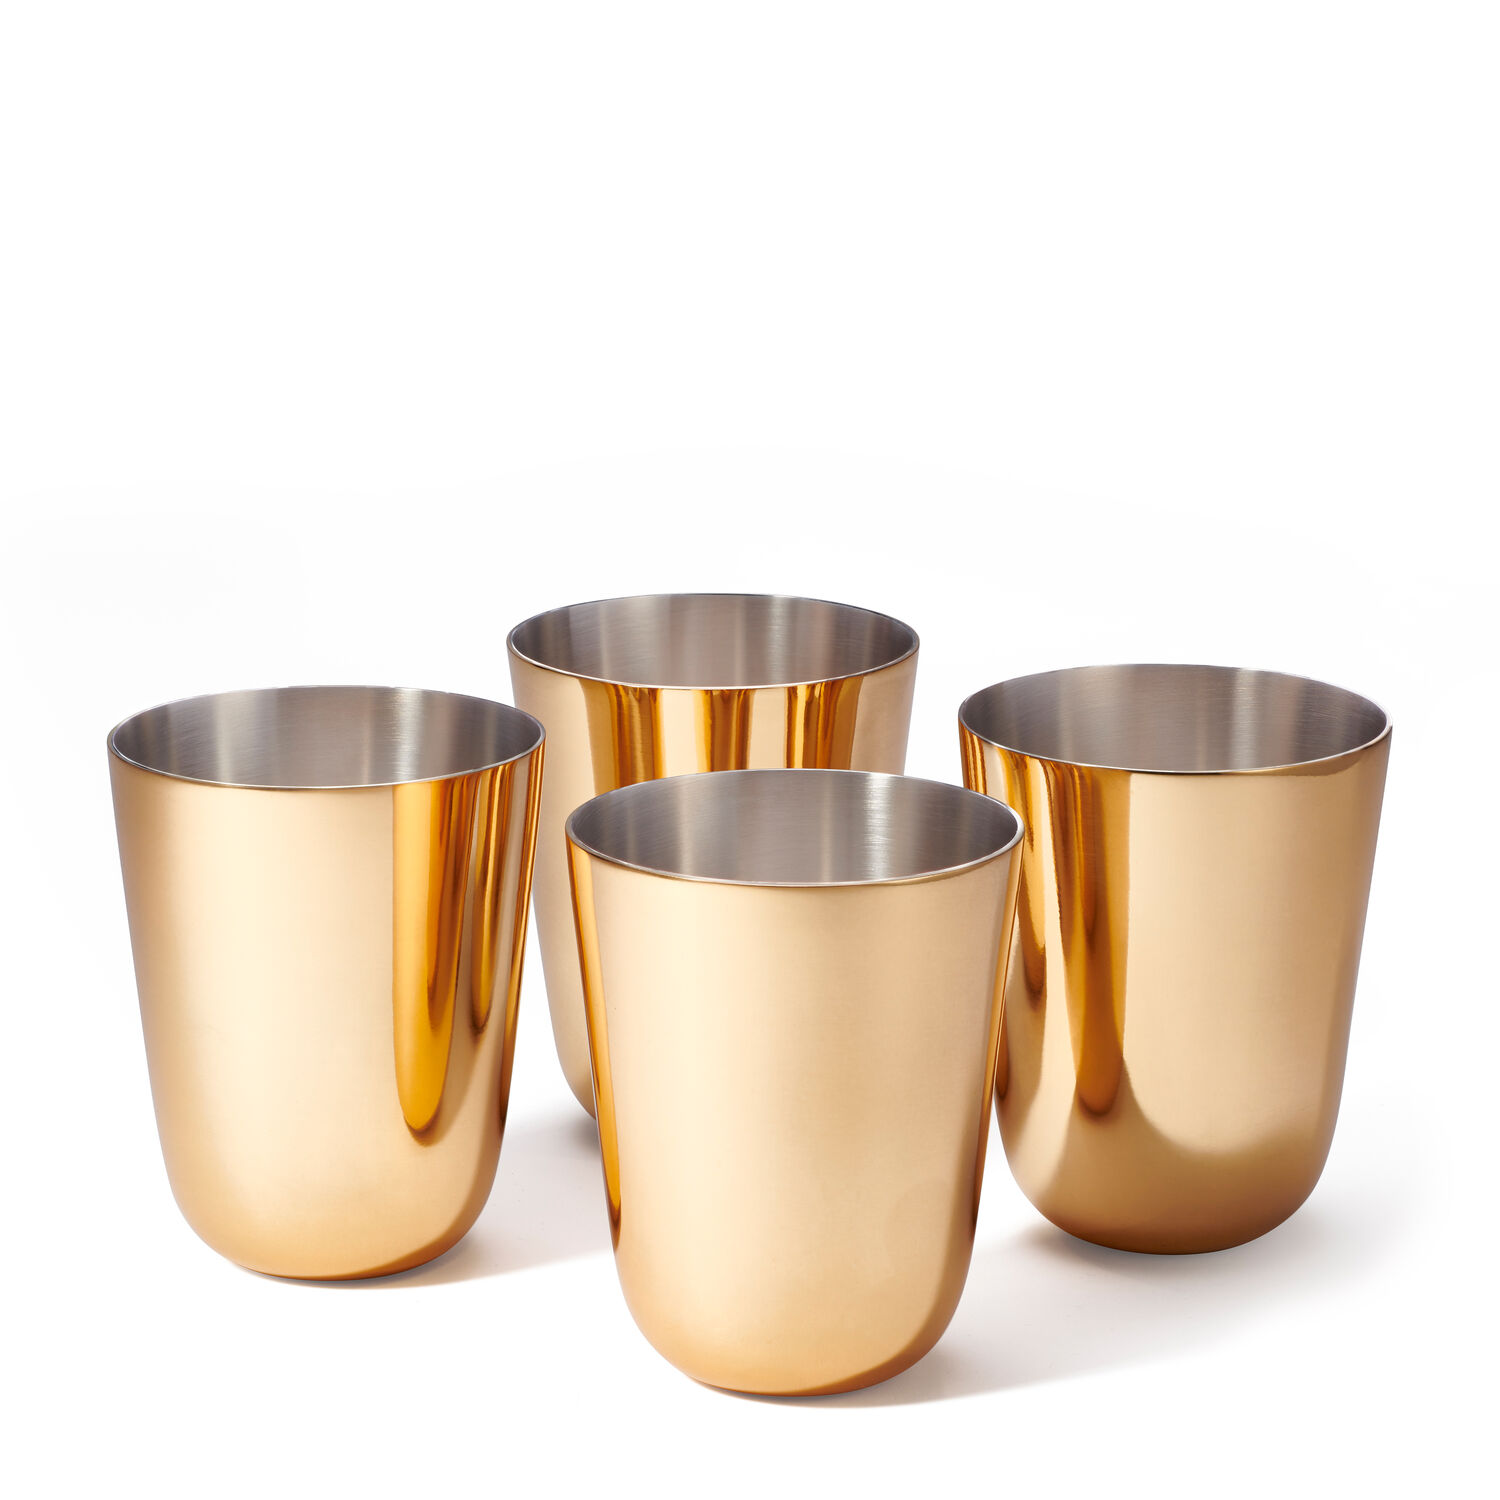 Fausto Julep Cup, Set of 4